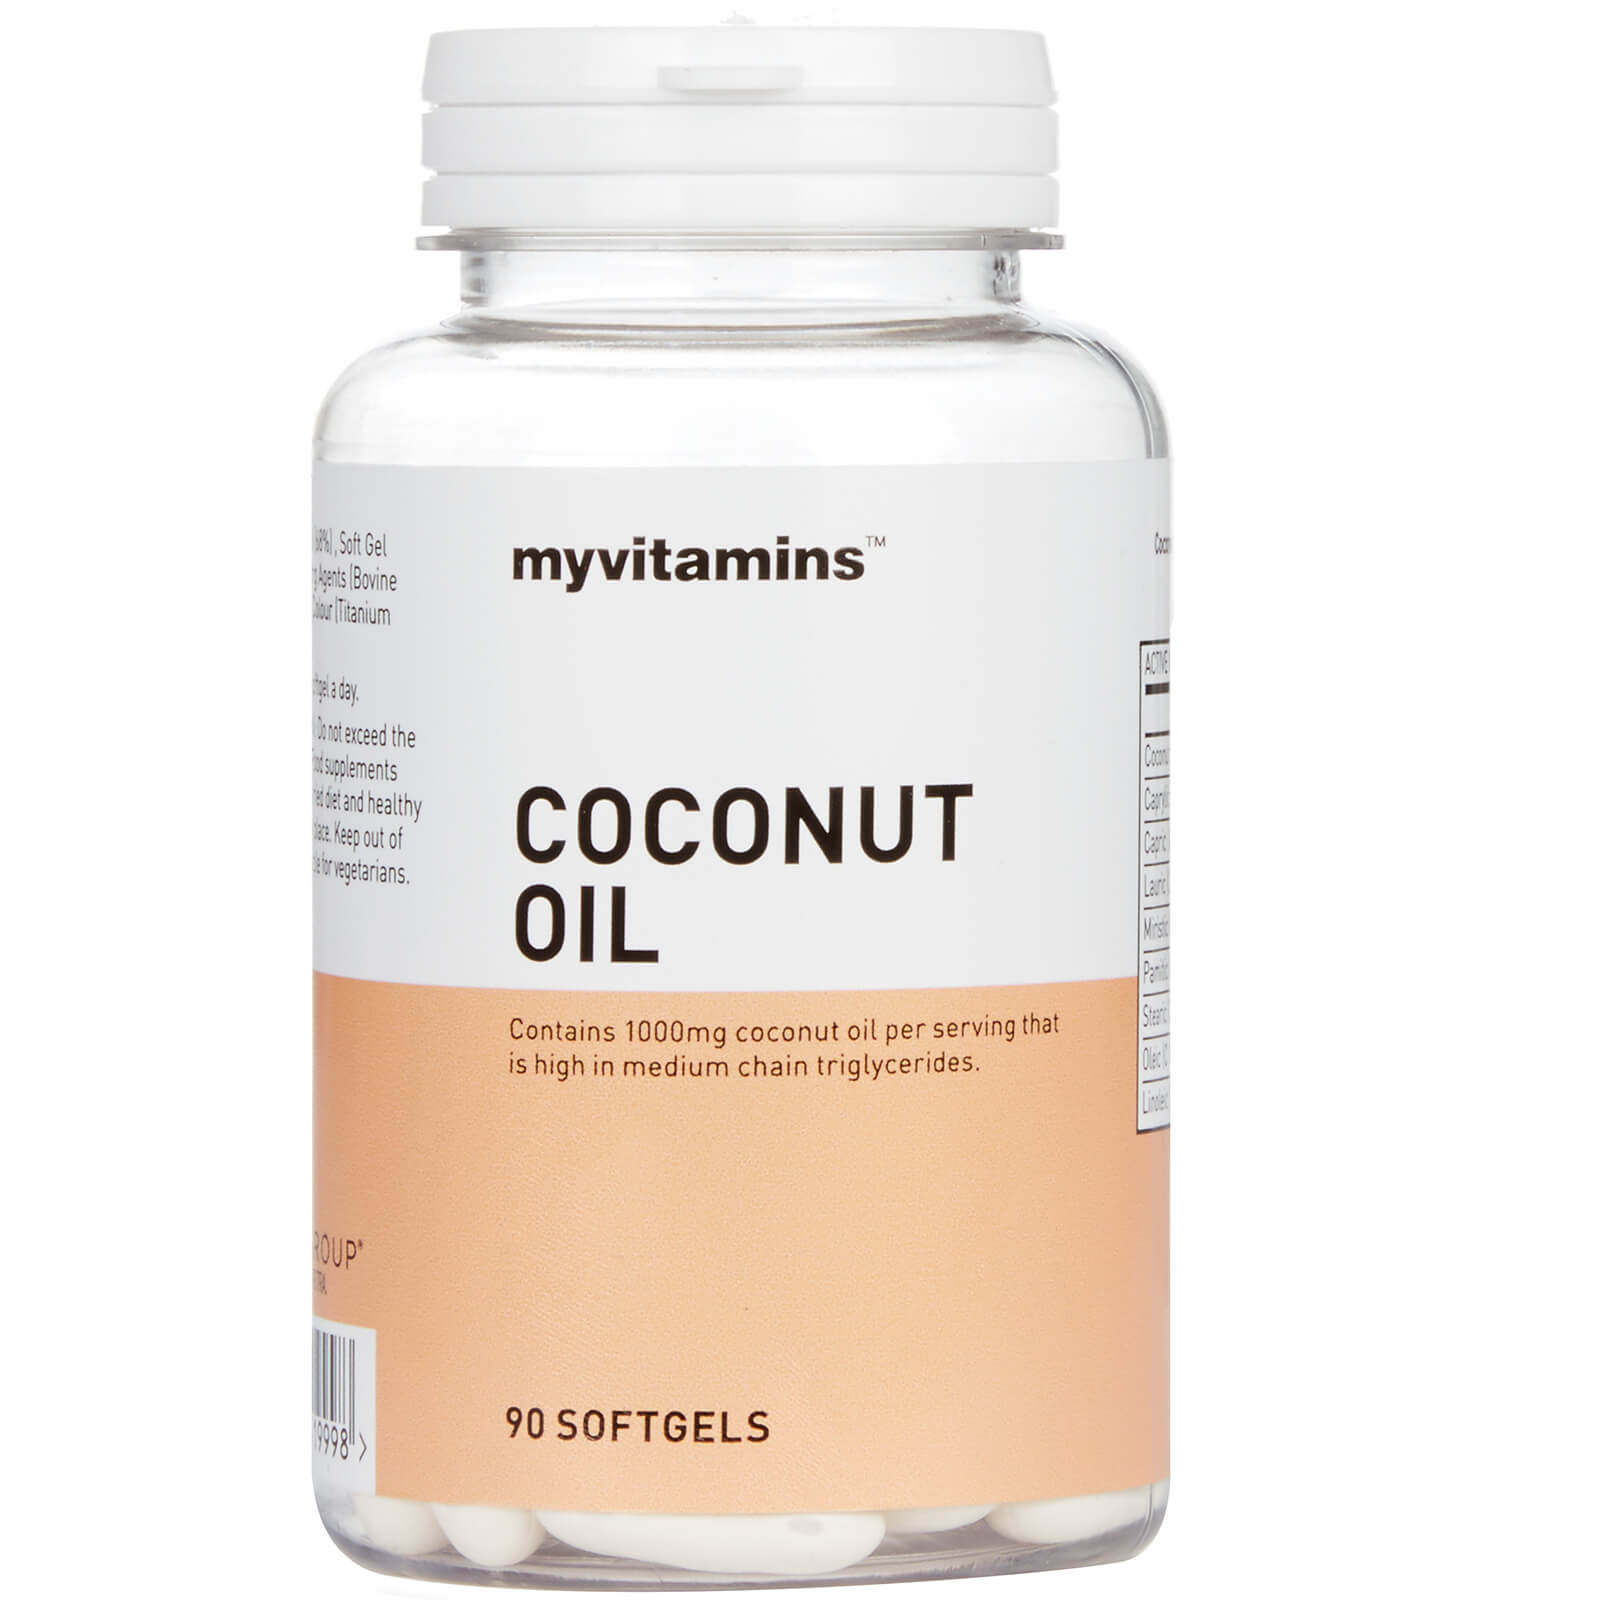 Myvitamins Coconut Oil, 30 Softgels